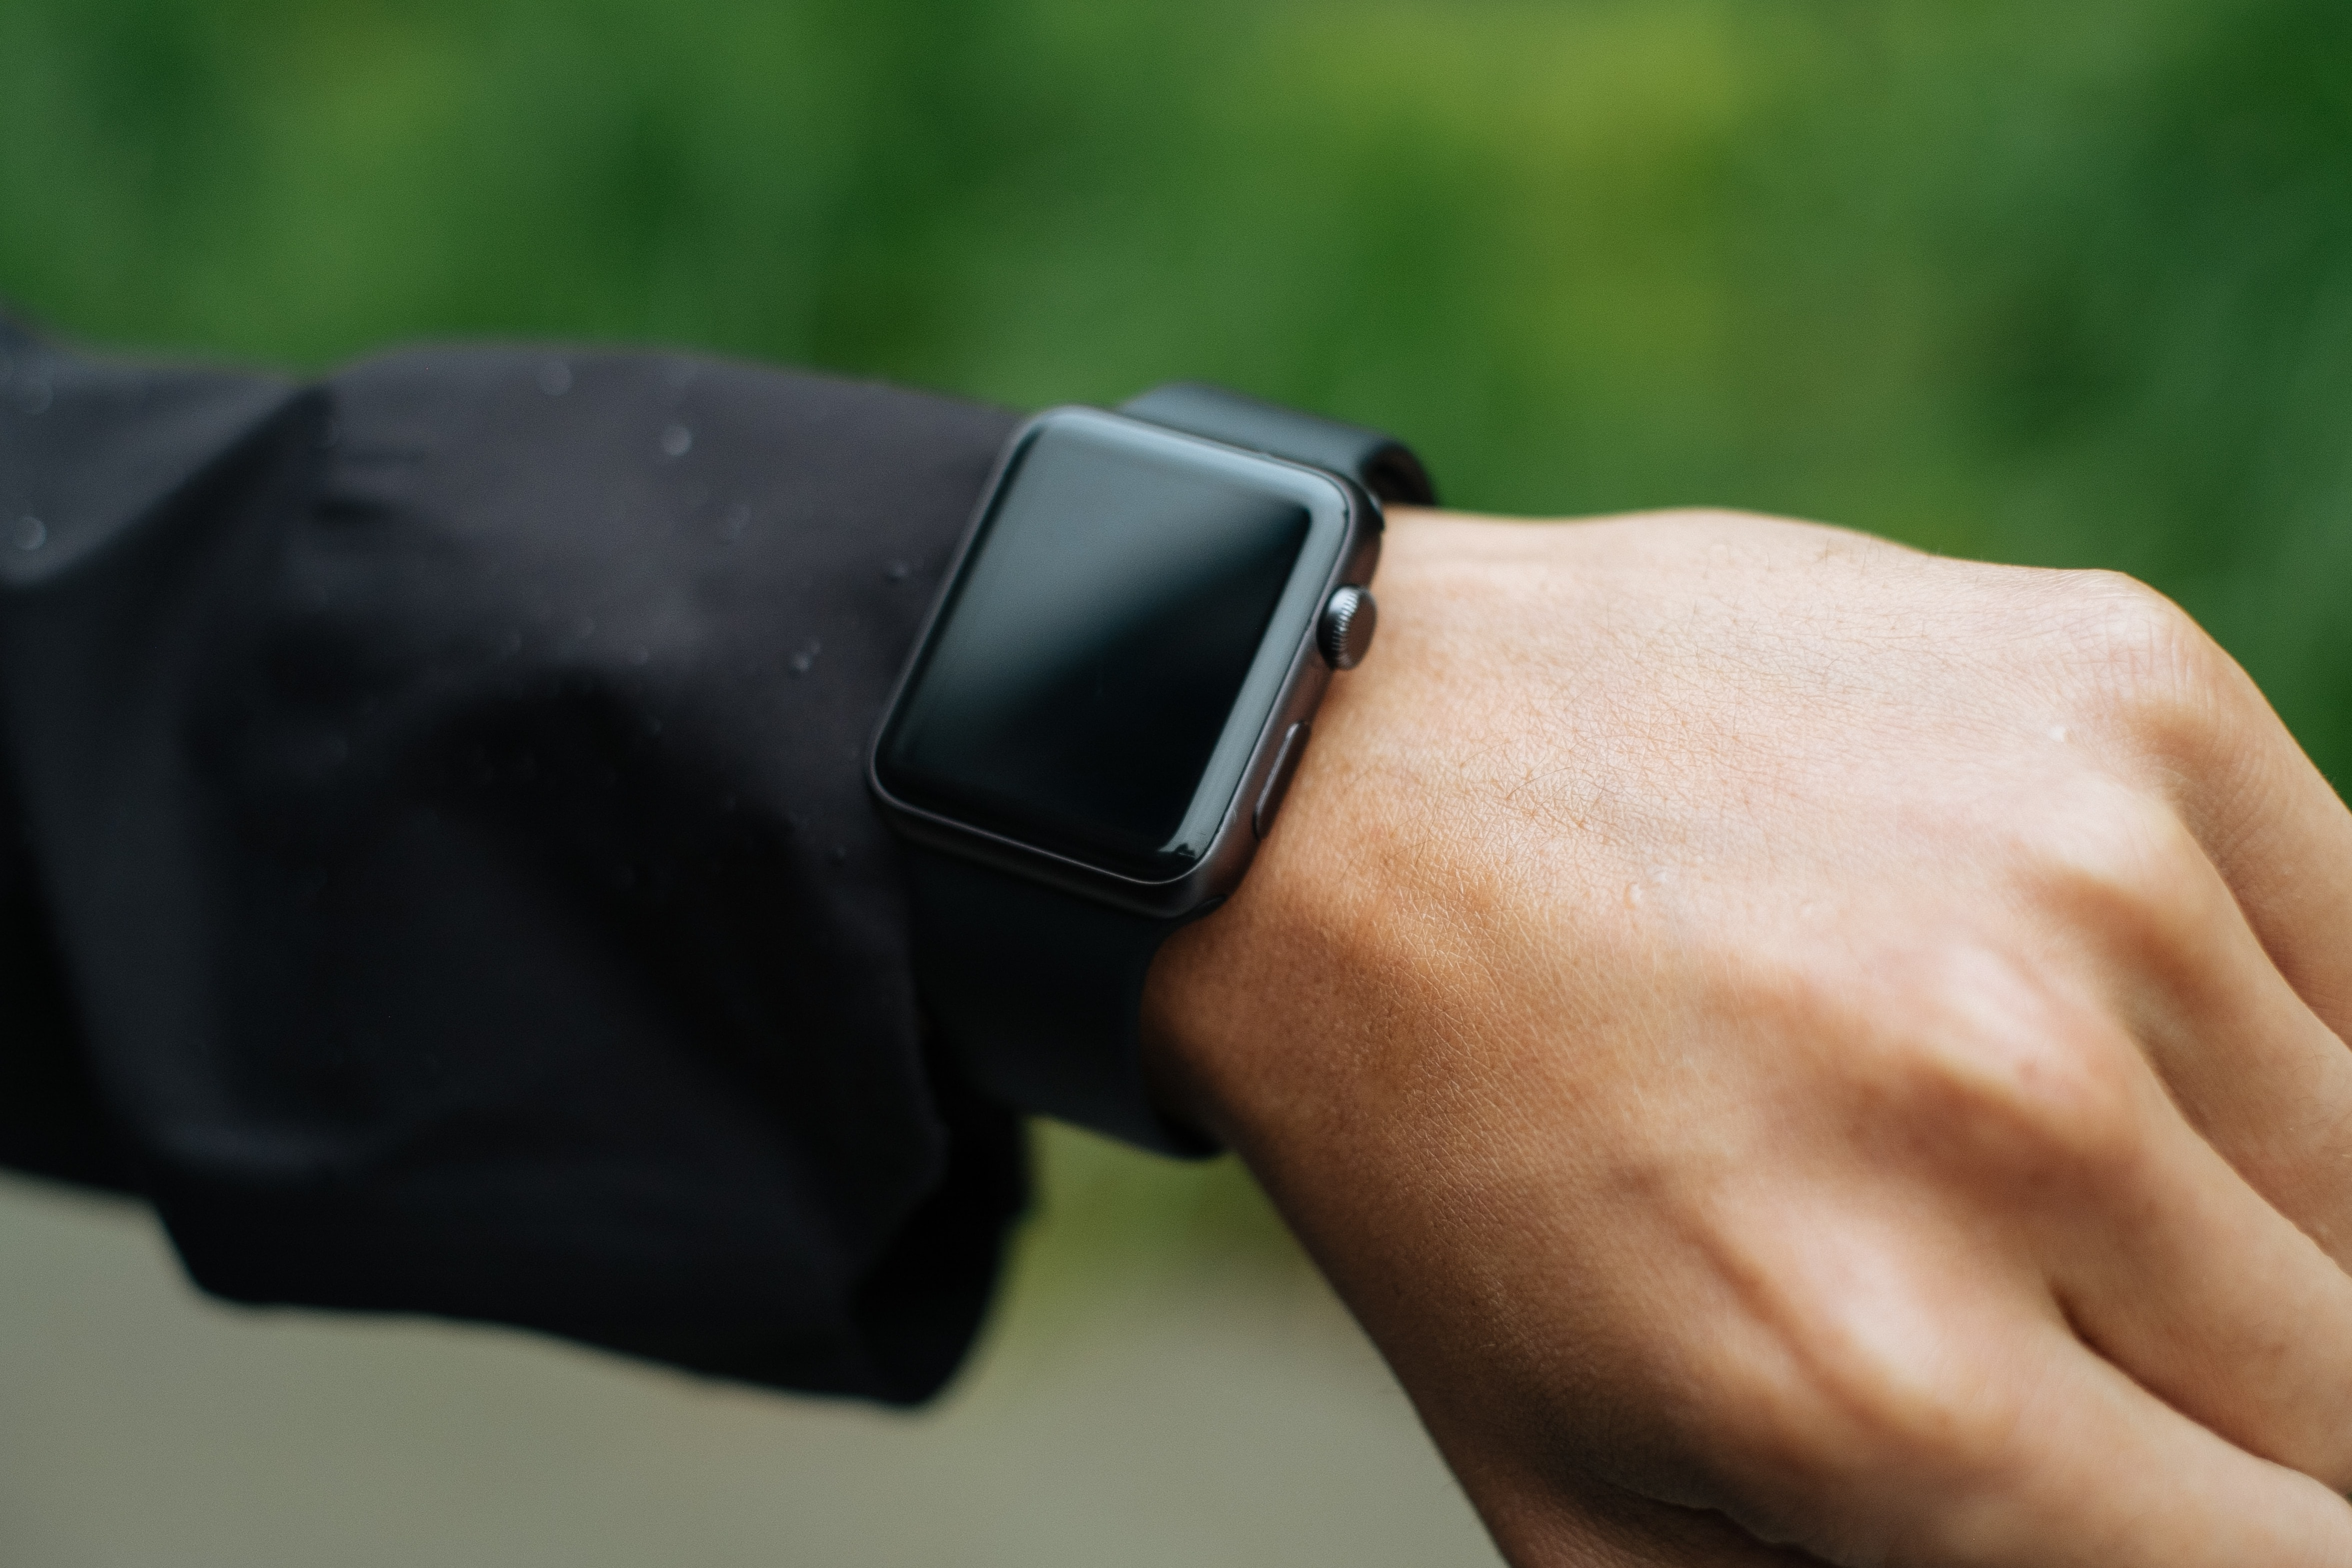 A close-up of an Apple Watch and raindrops on a man's arm.